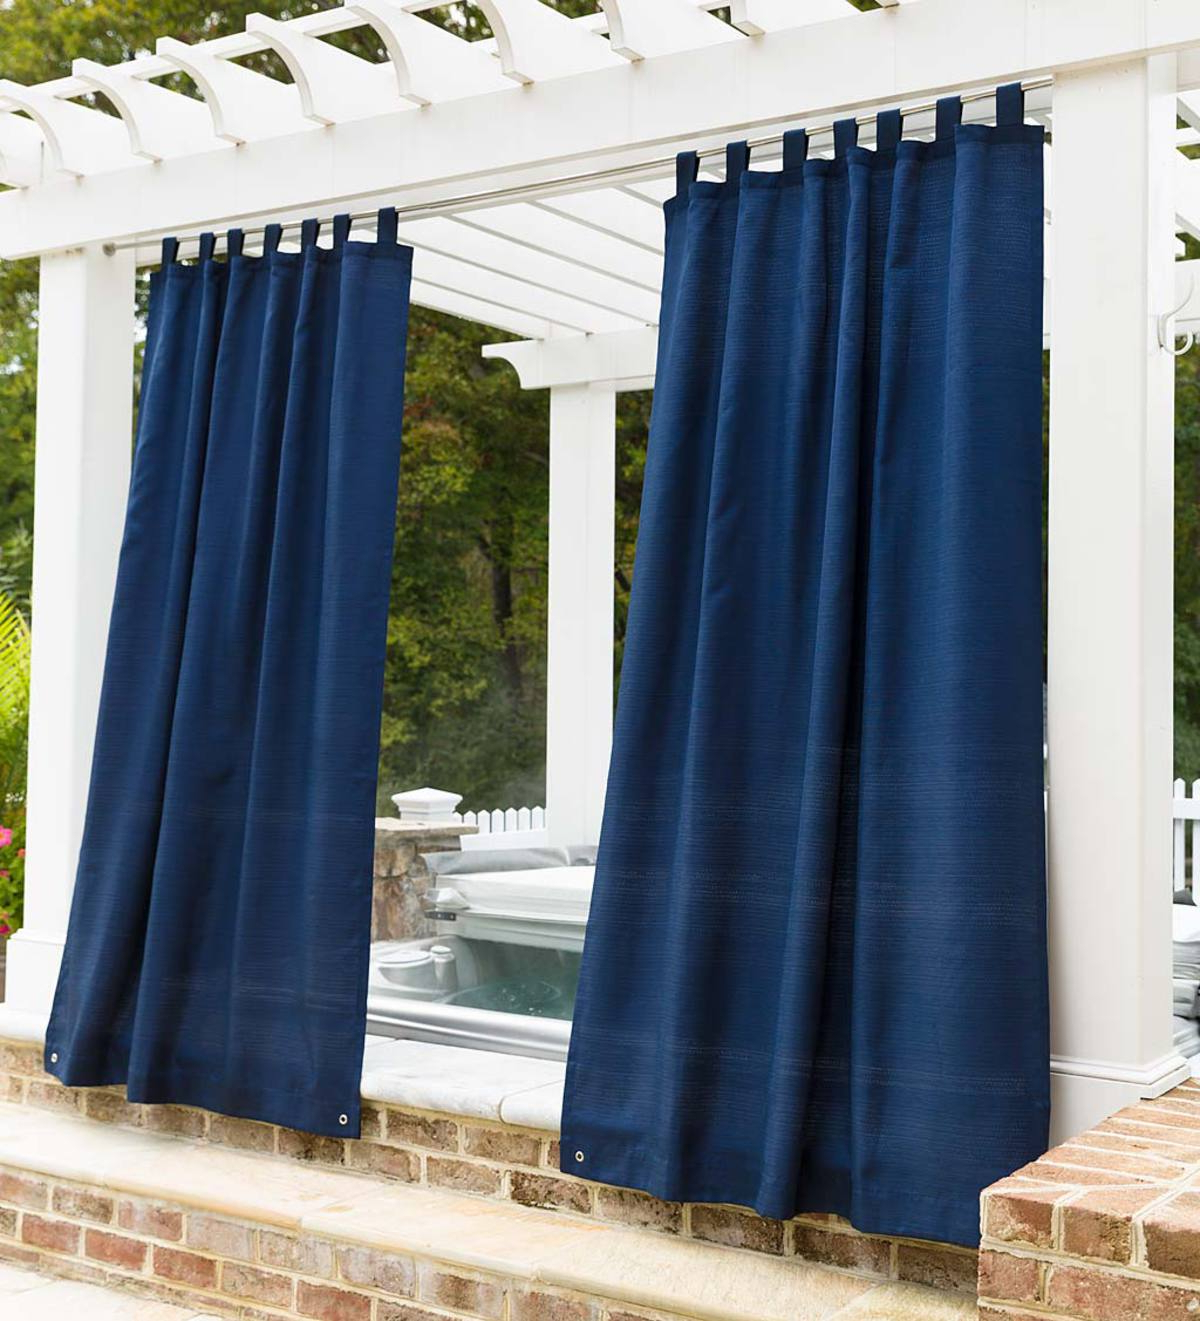 Grasscloth Outdoor Curtain Panel With Grommet Top Throughout Well Liked Patio Grommet Top Single Curtain Panels (View 15 of 20)